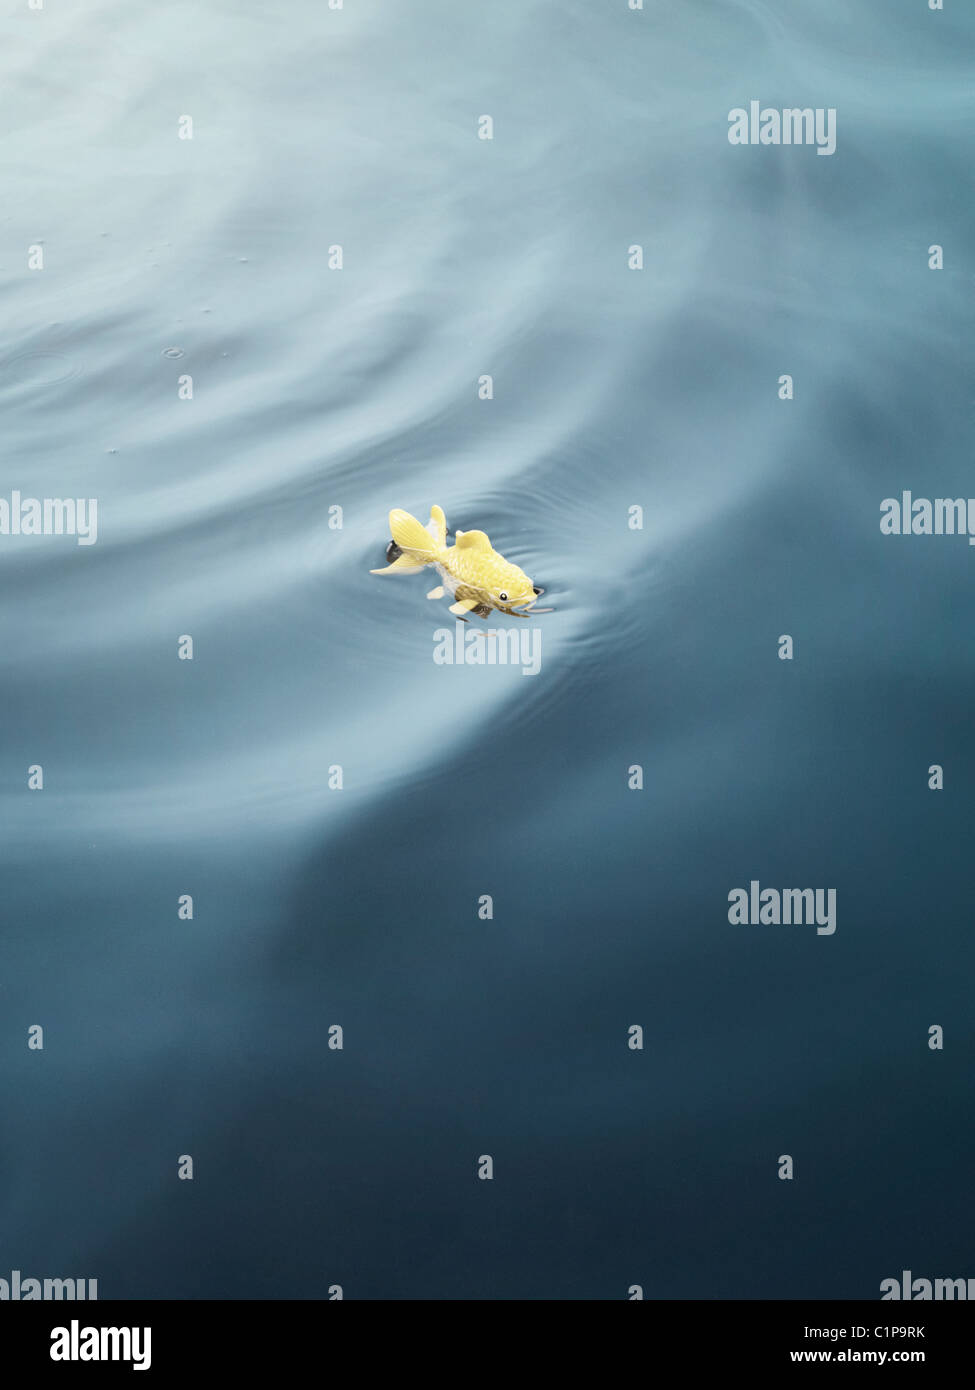 Toy fish swimming in water Stock Photo